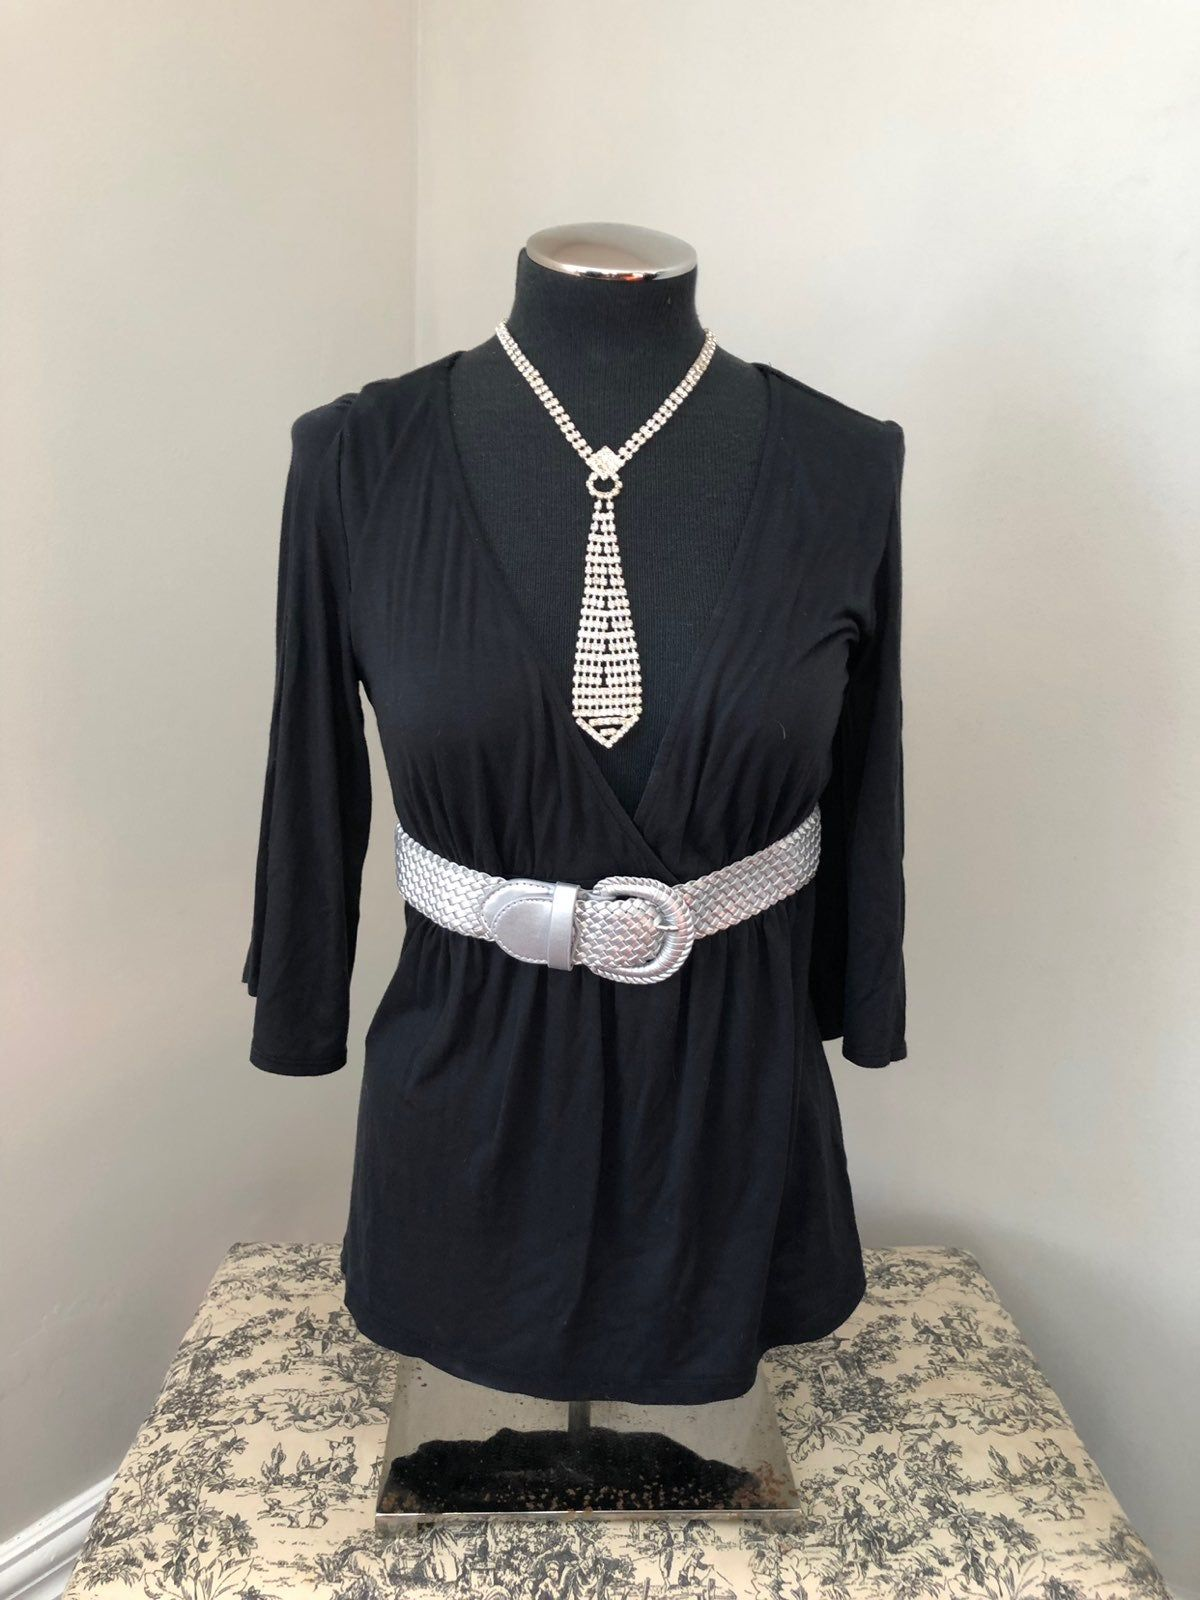 Black Low Cut Blouse Medium Express